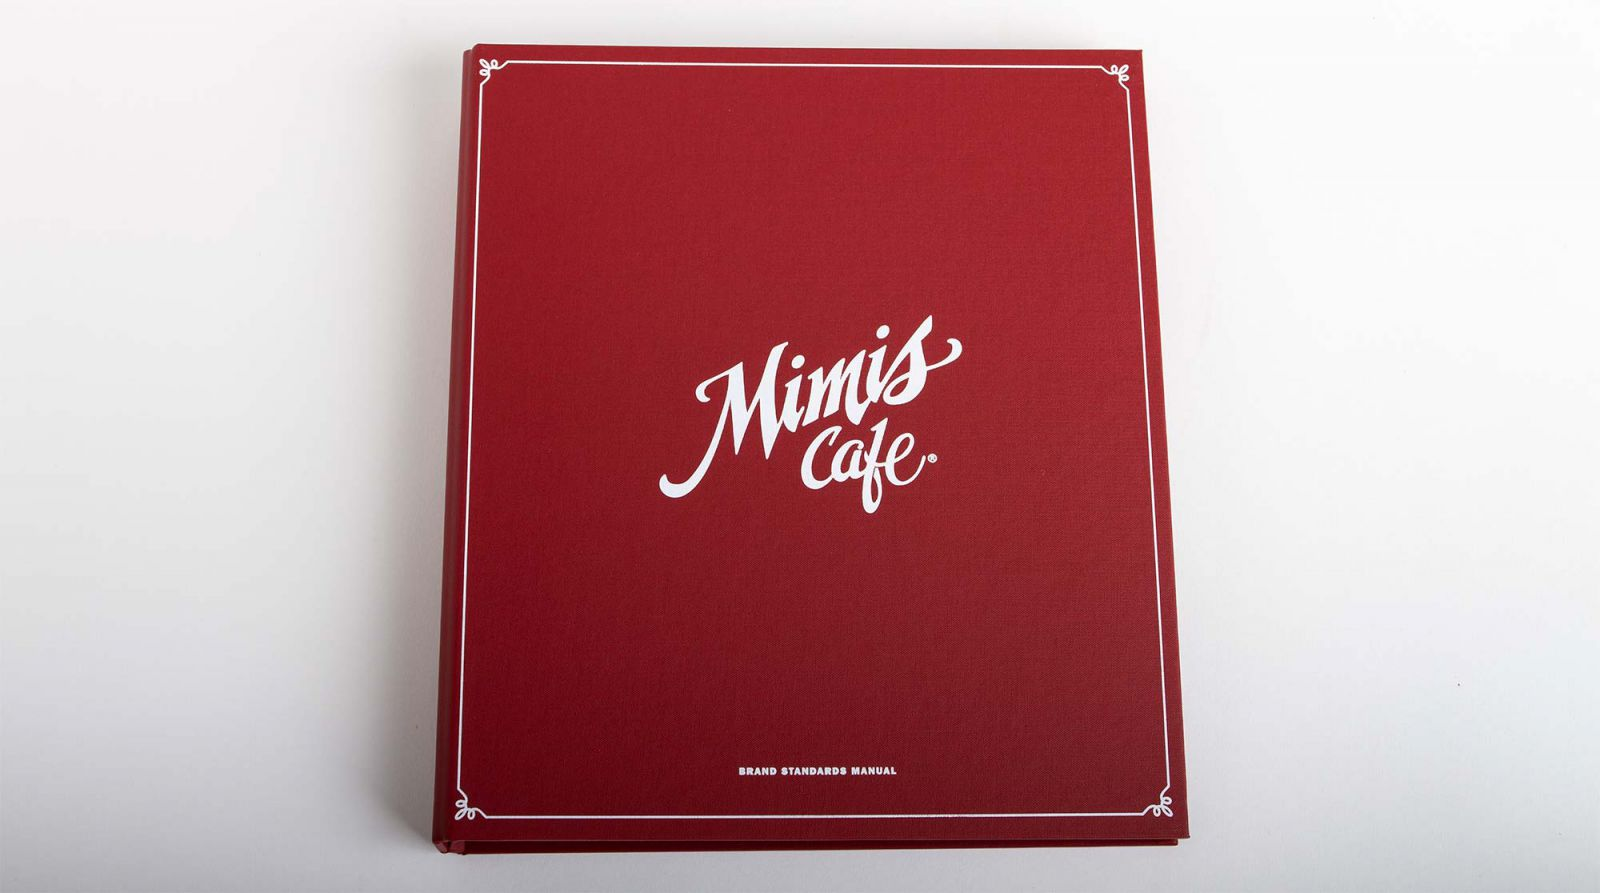 Cover of Mimi's Cafe Brand Standards Manual